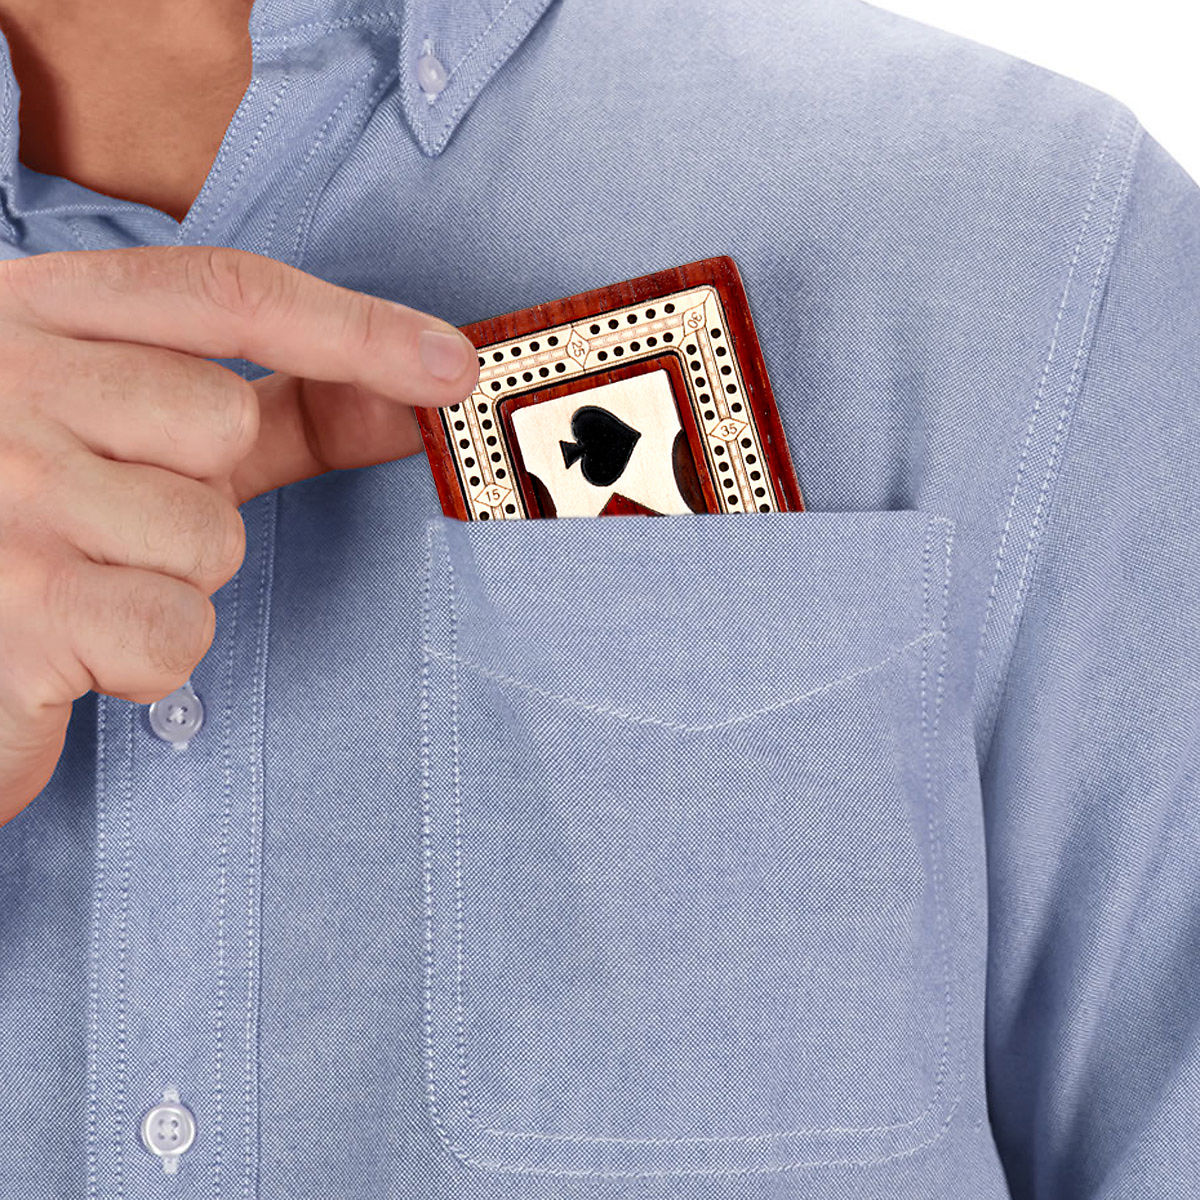 Cribbage board easily fits in shirt pocket